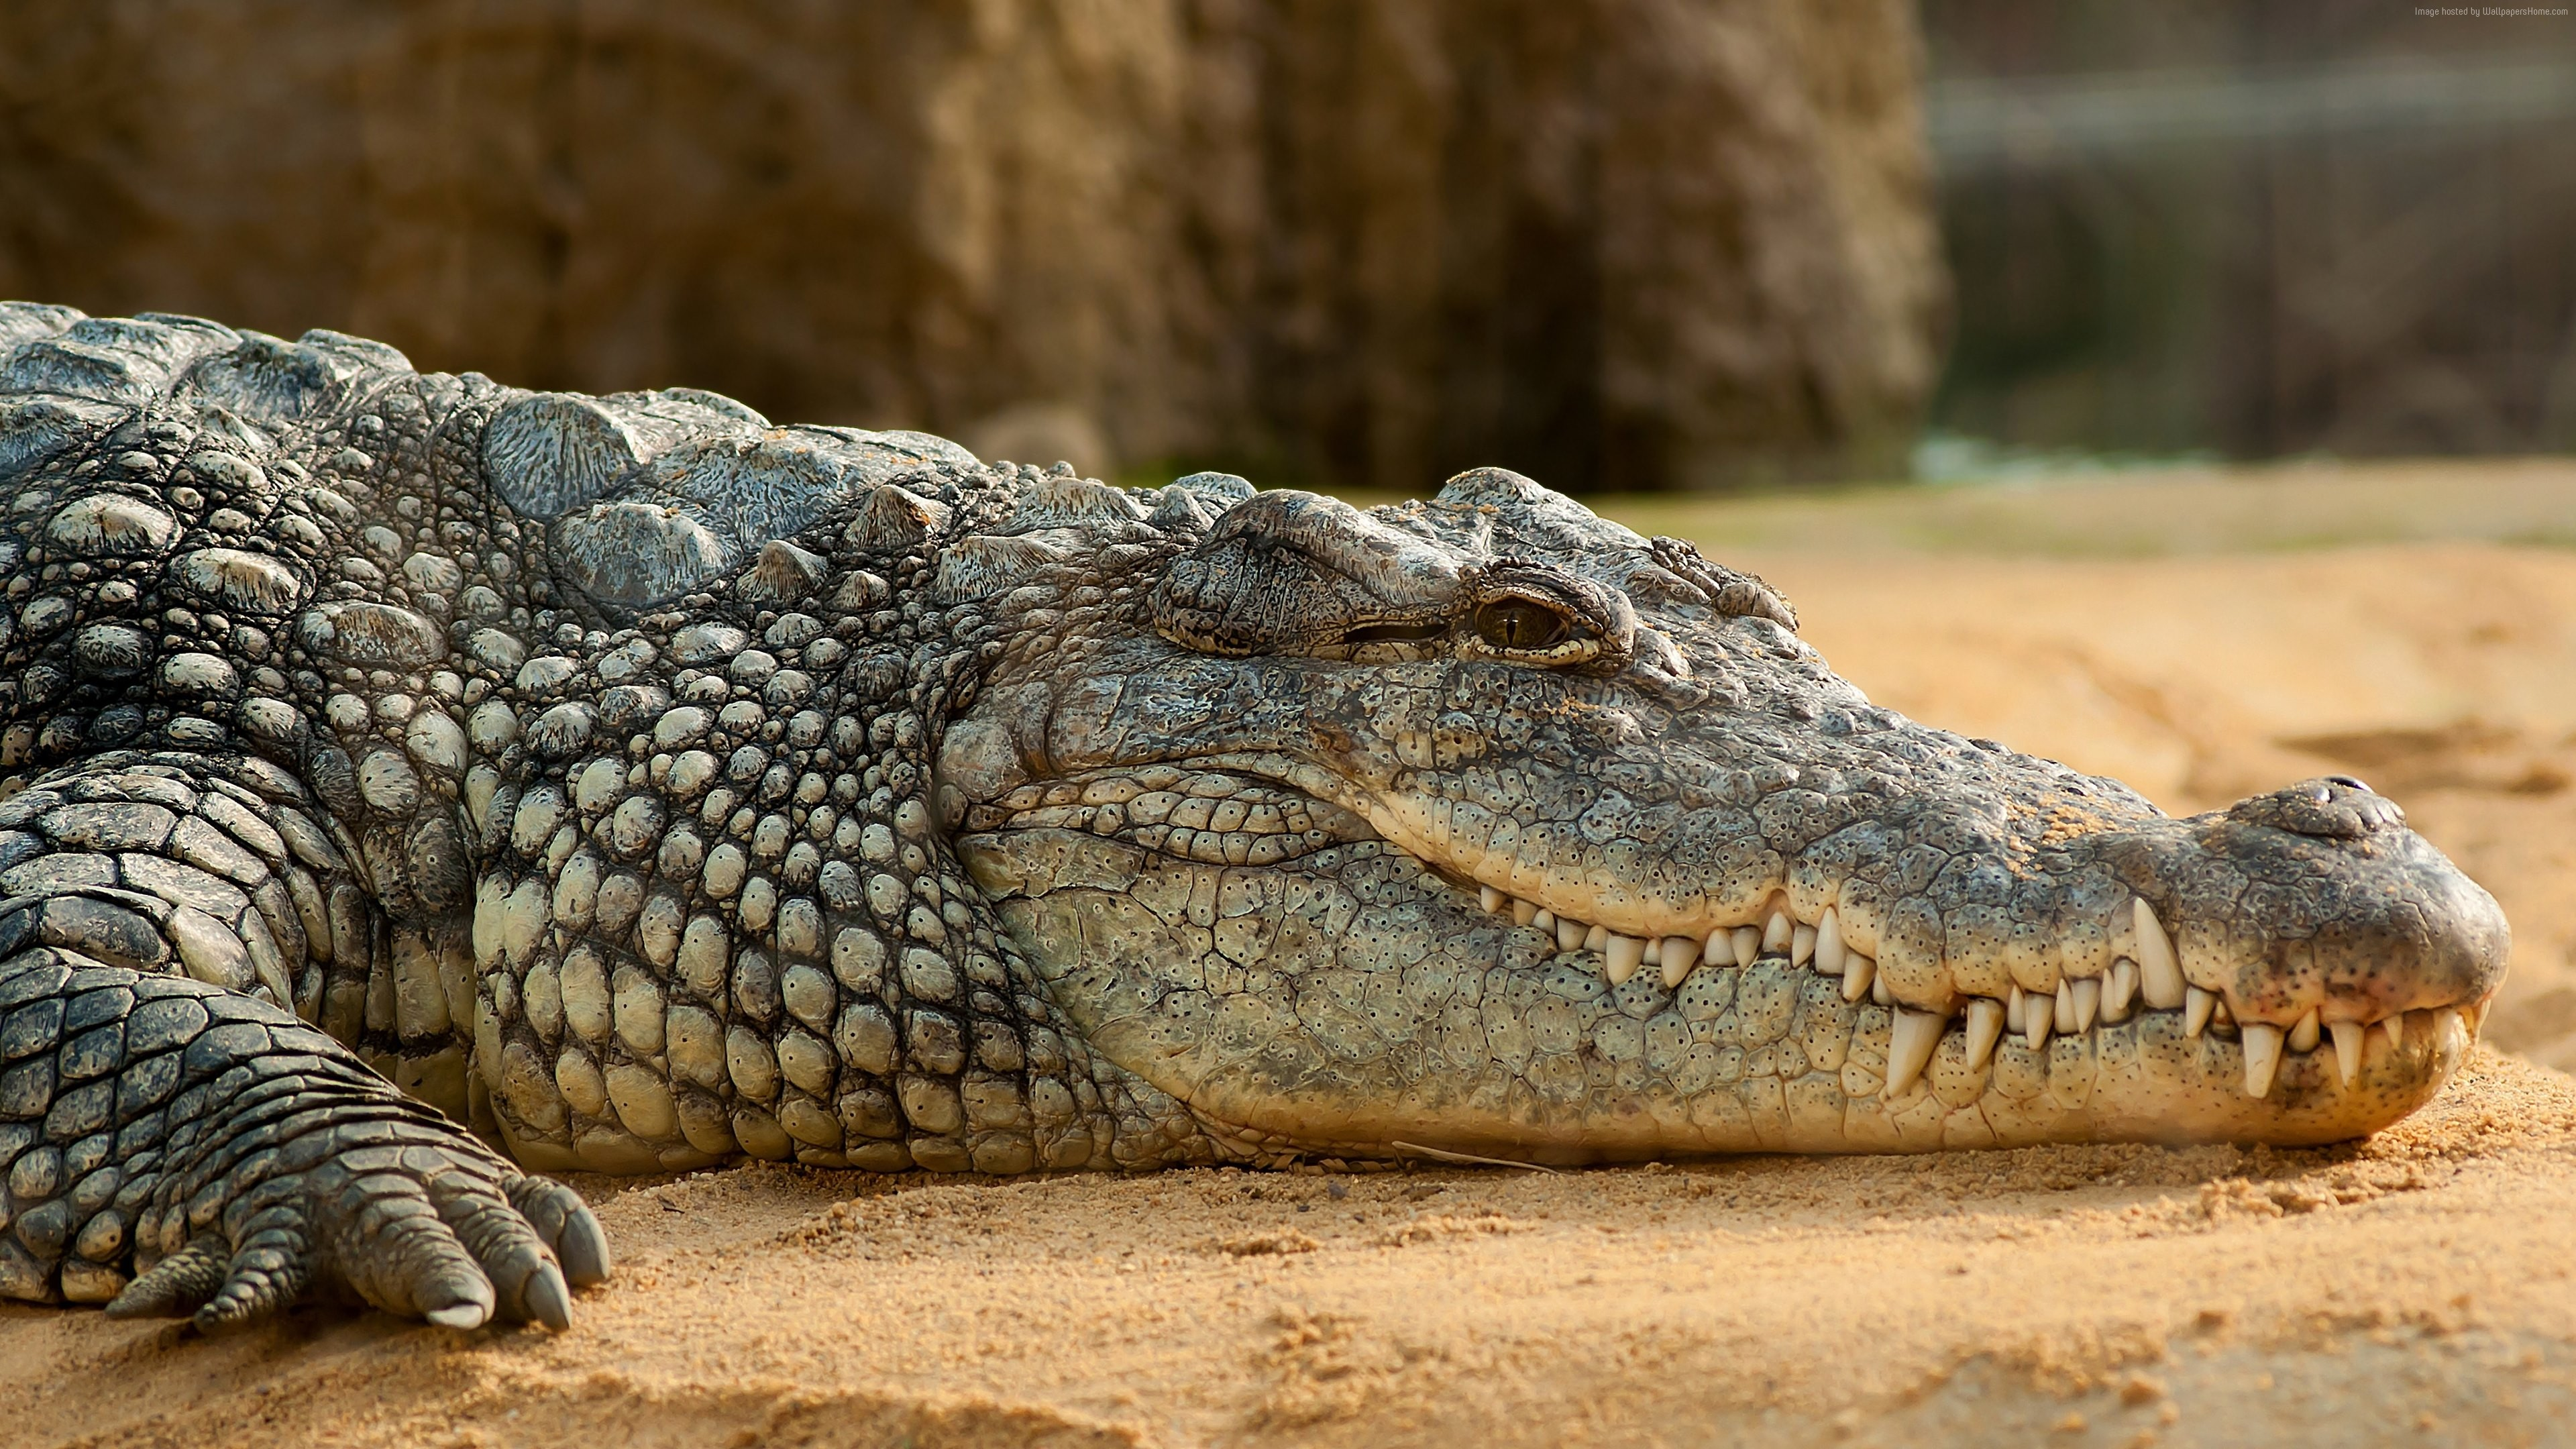 Wallpaper Nile Crocodile, reptilies, Animals